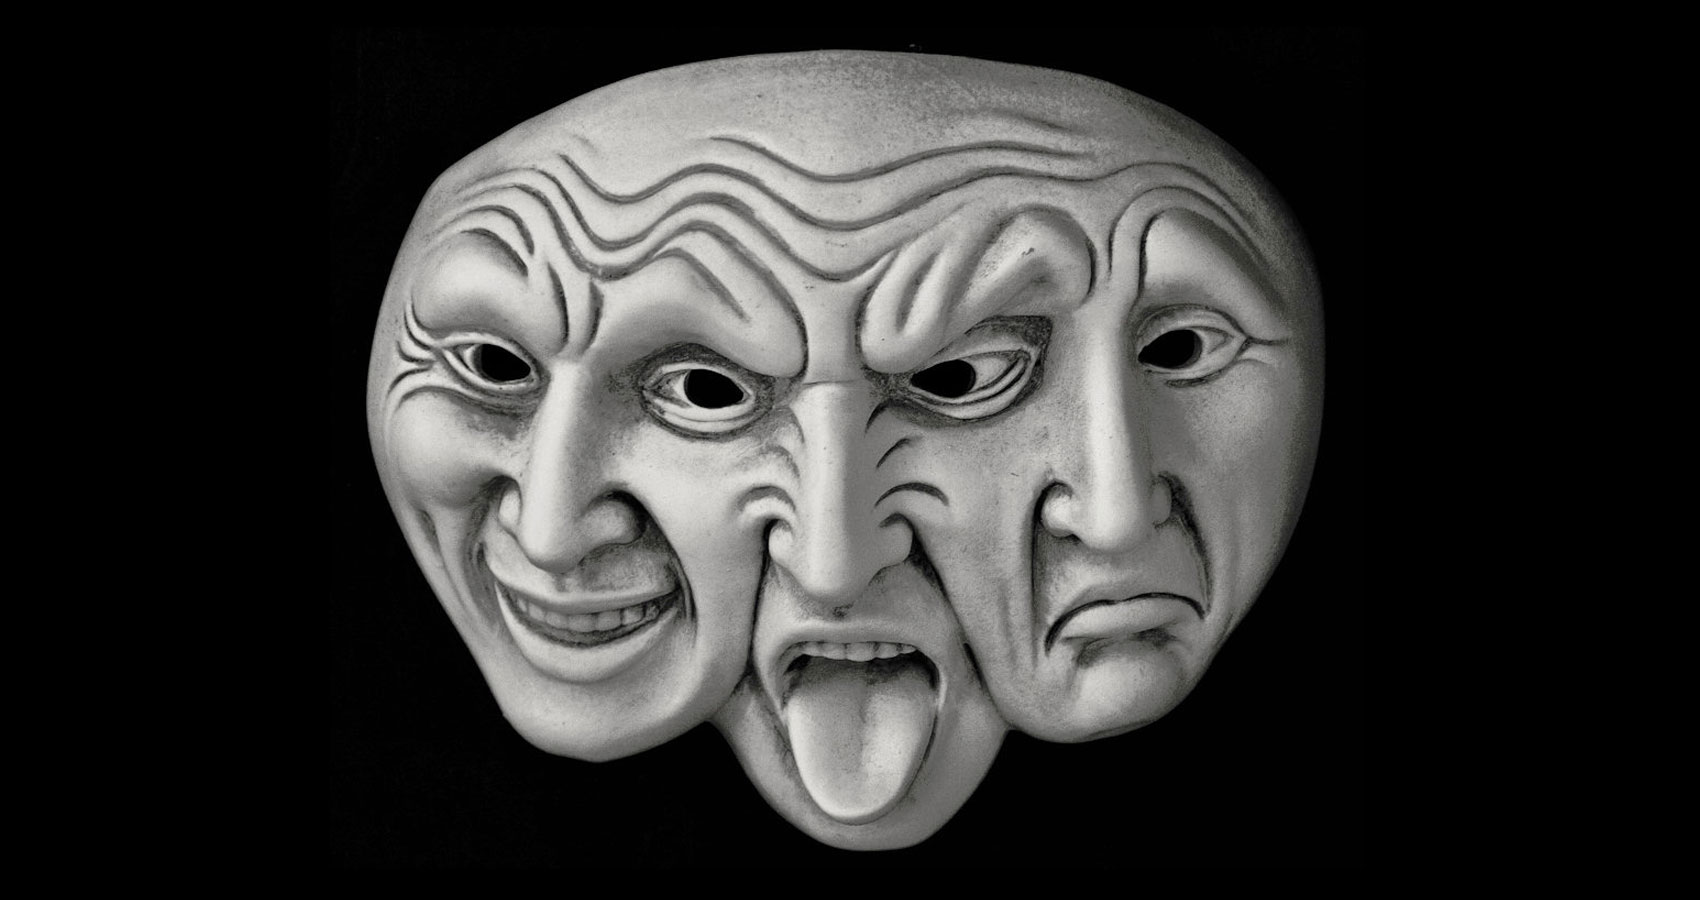 thr3 faces by Geovanni Villafañe at Spillwords.com